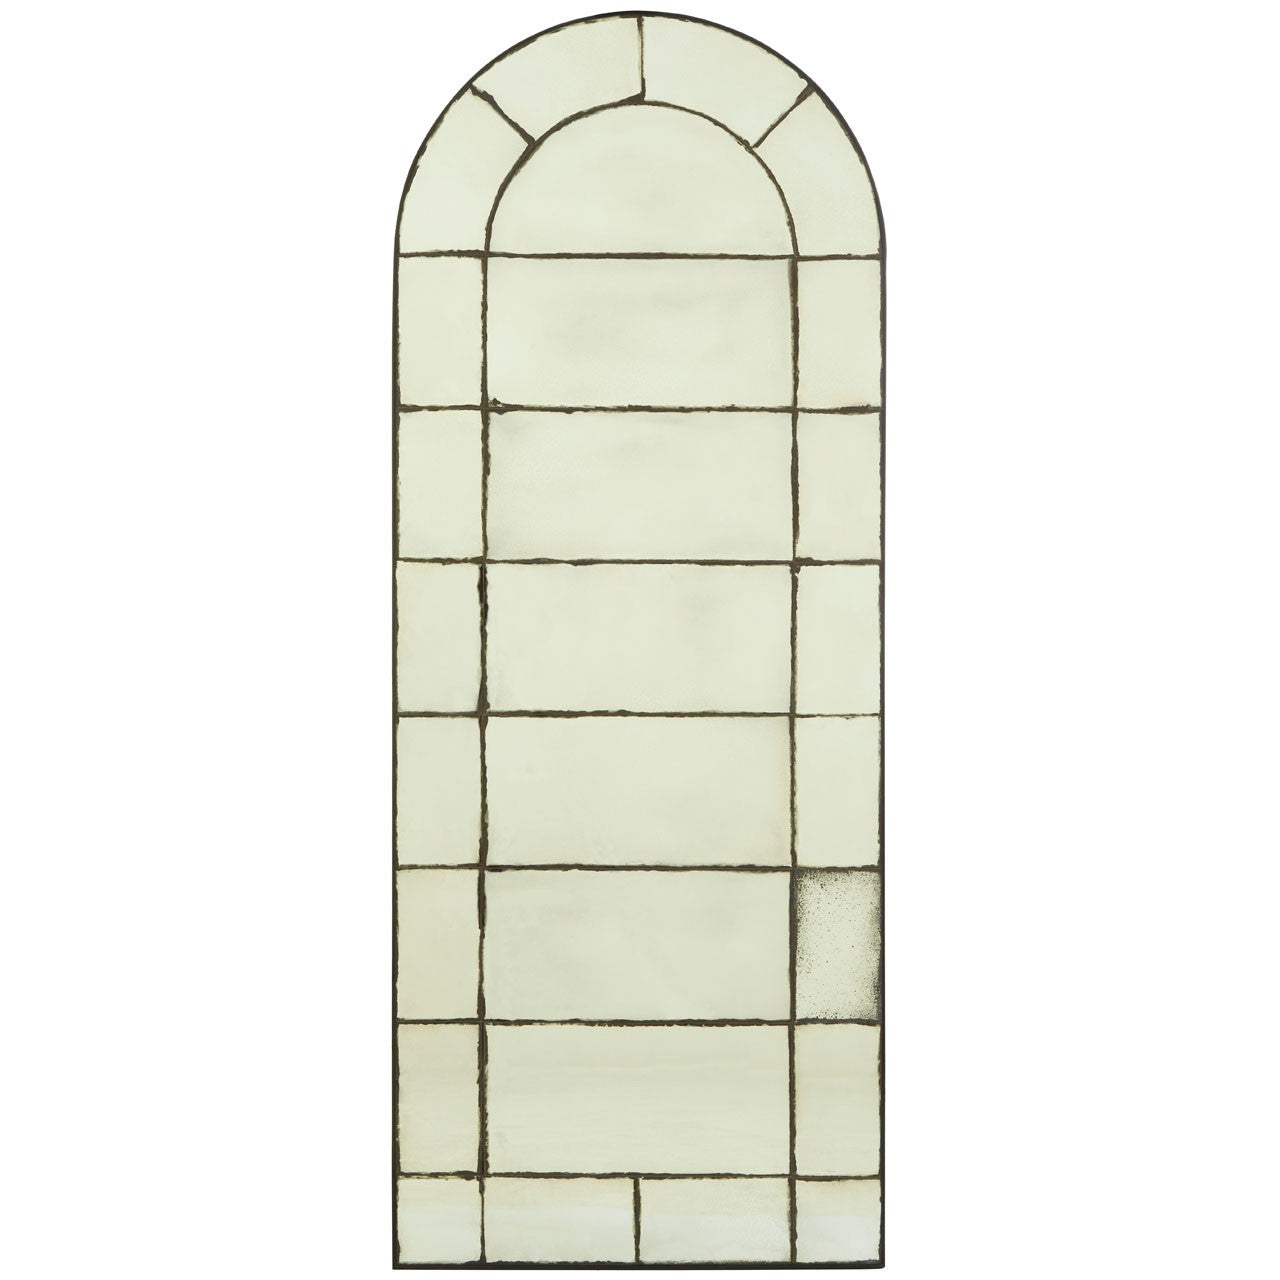 Olivia's Ray Wall Mirror Window Effect Grey | Outlet